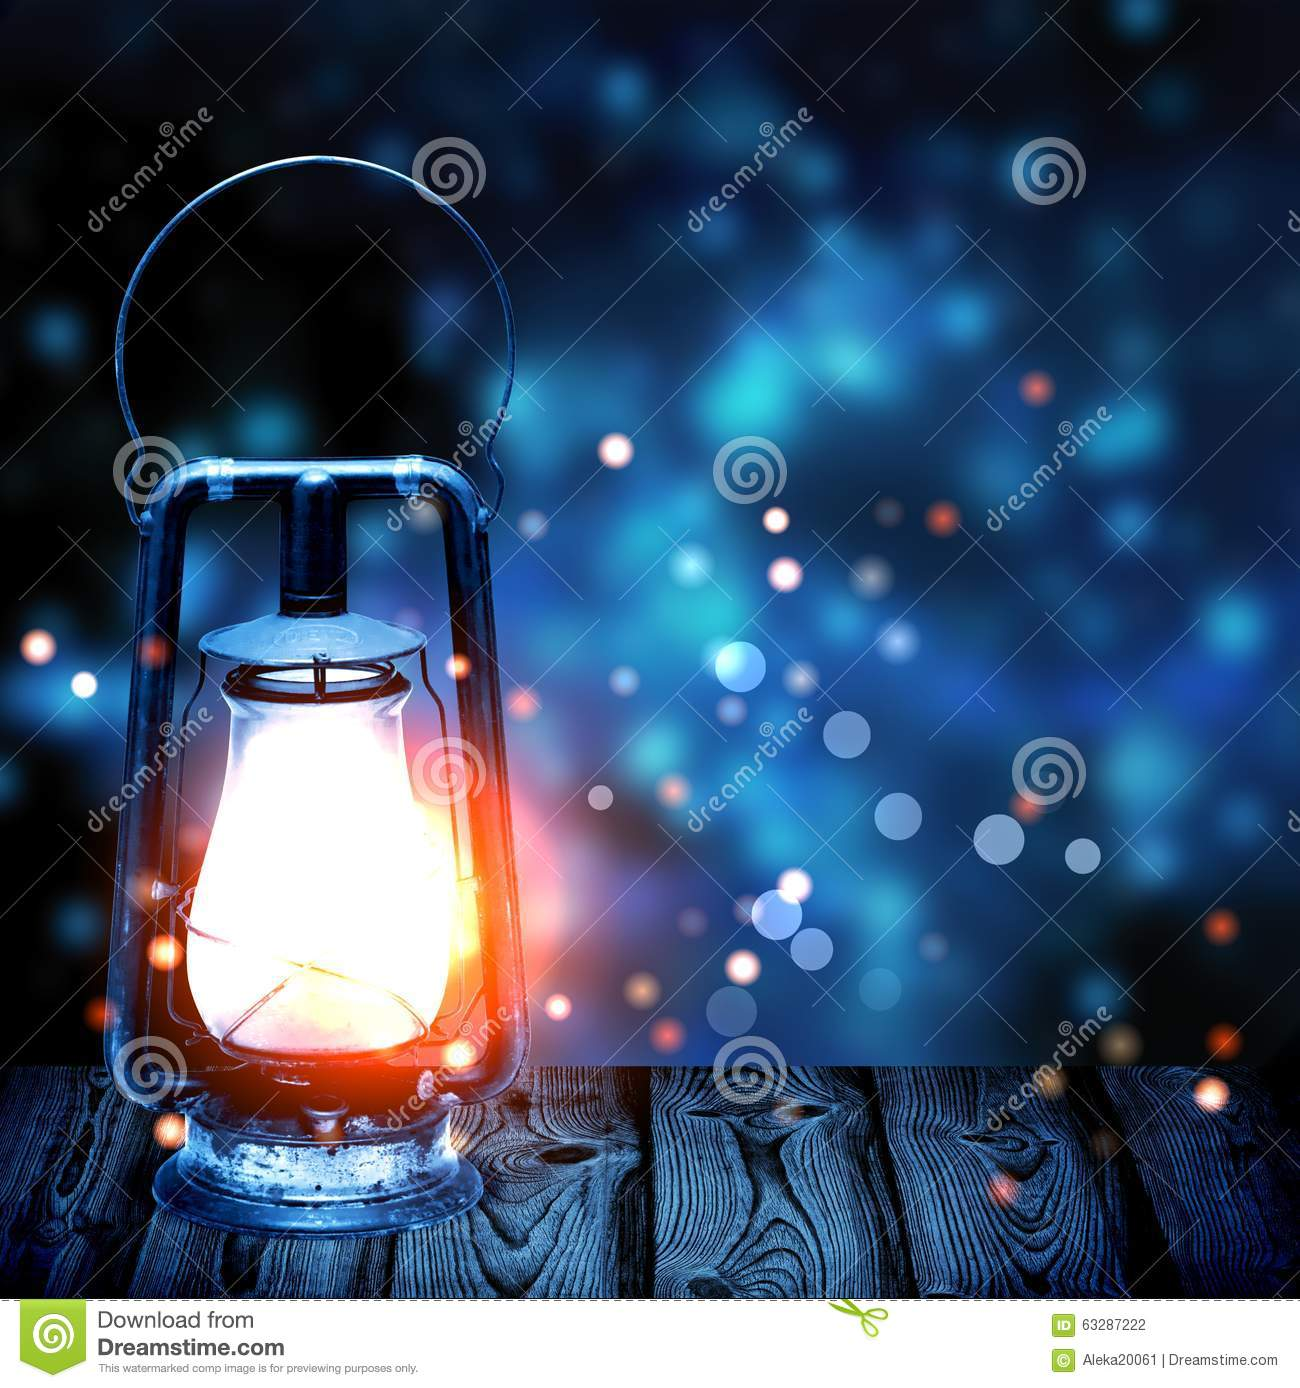 Old Kerosene Lamp Shining In The Dark Blue Blur In The